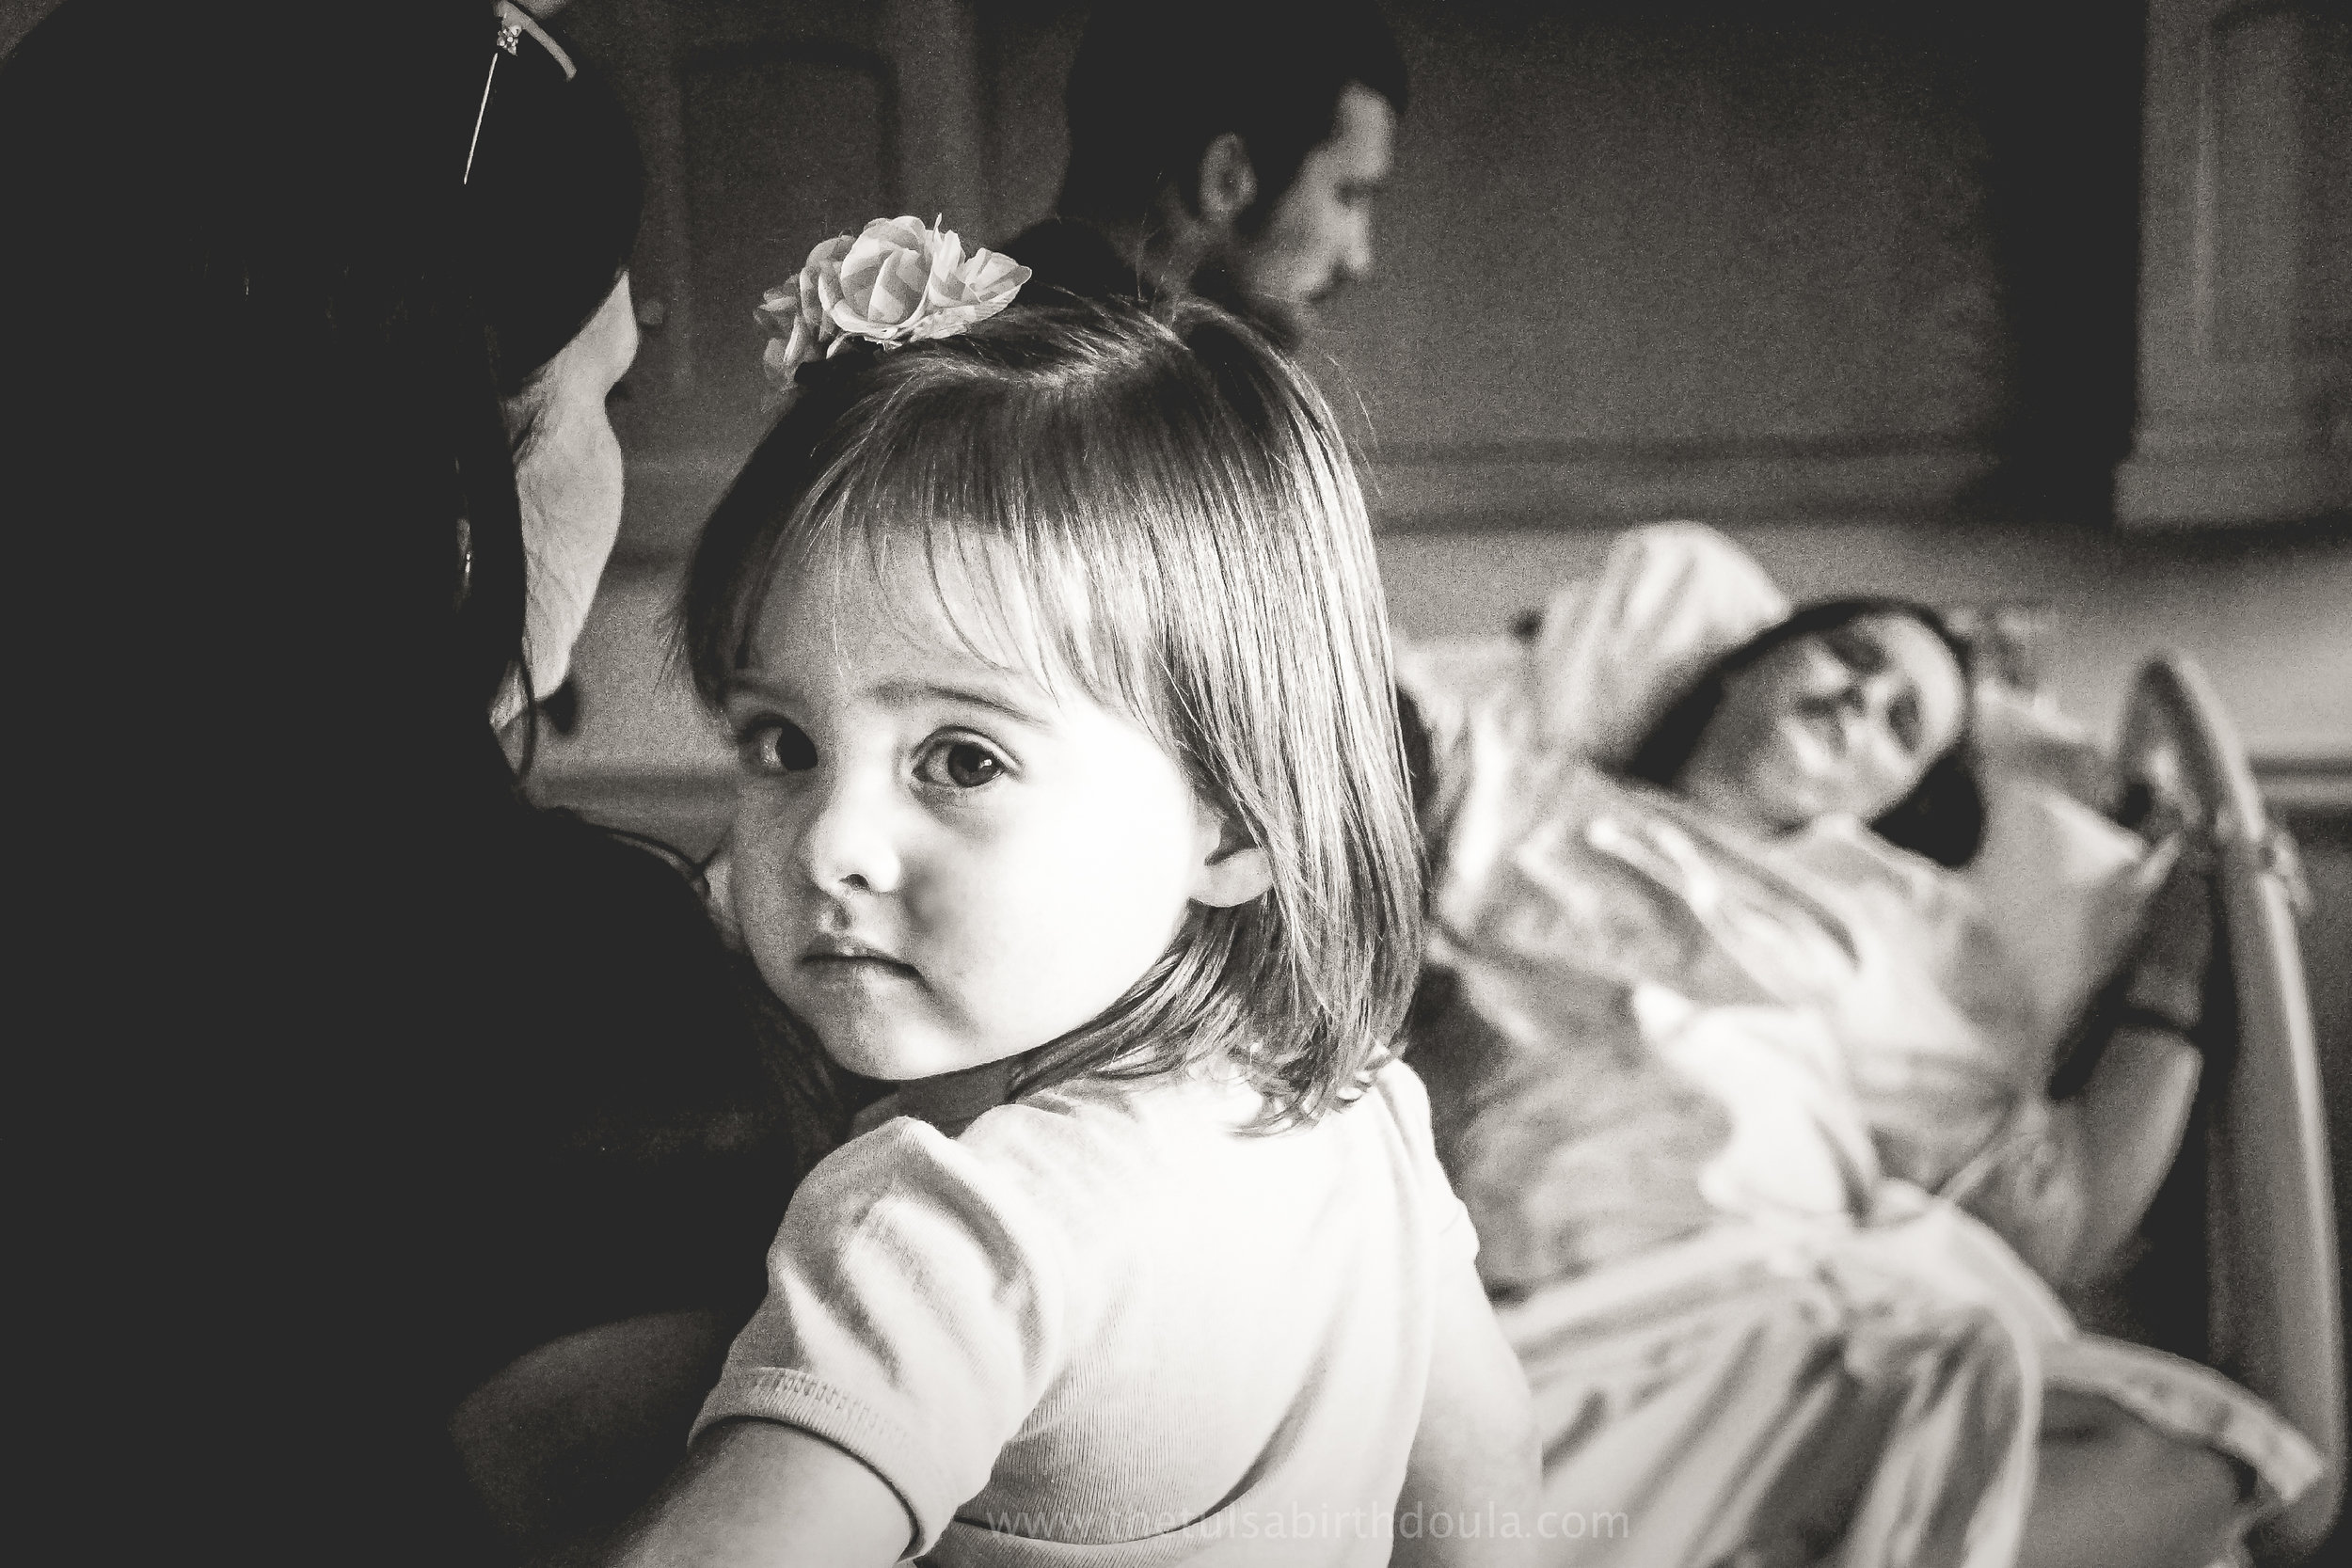 She stood by and watched her mom give birth. Powerful image by  the Tulsa Birth Doula